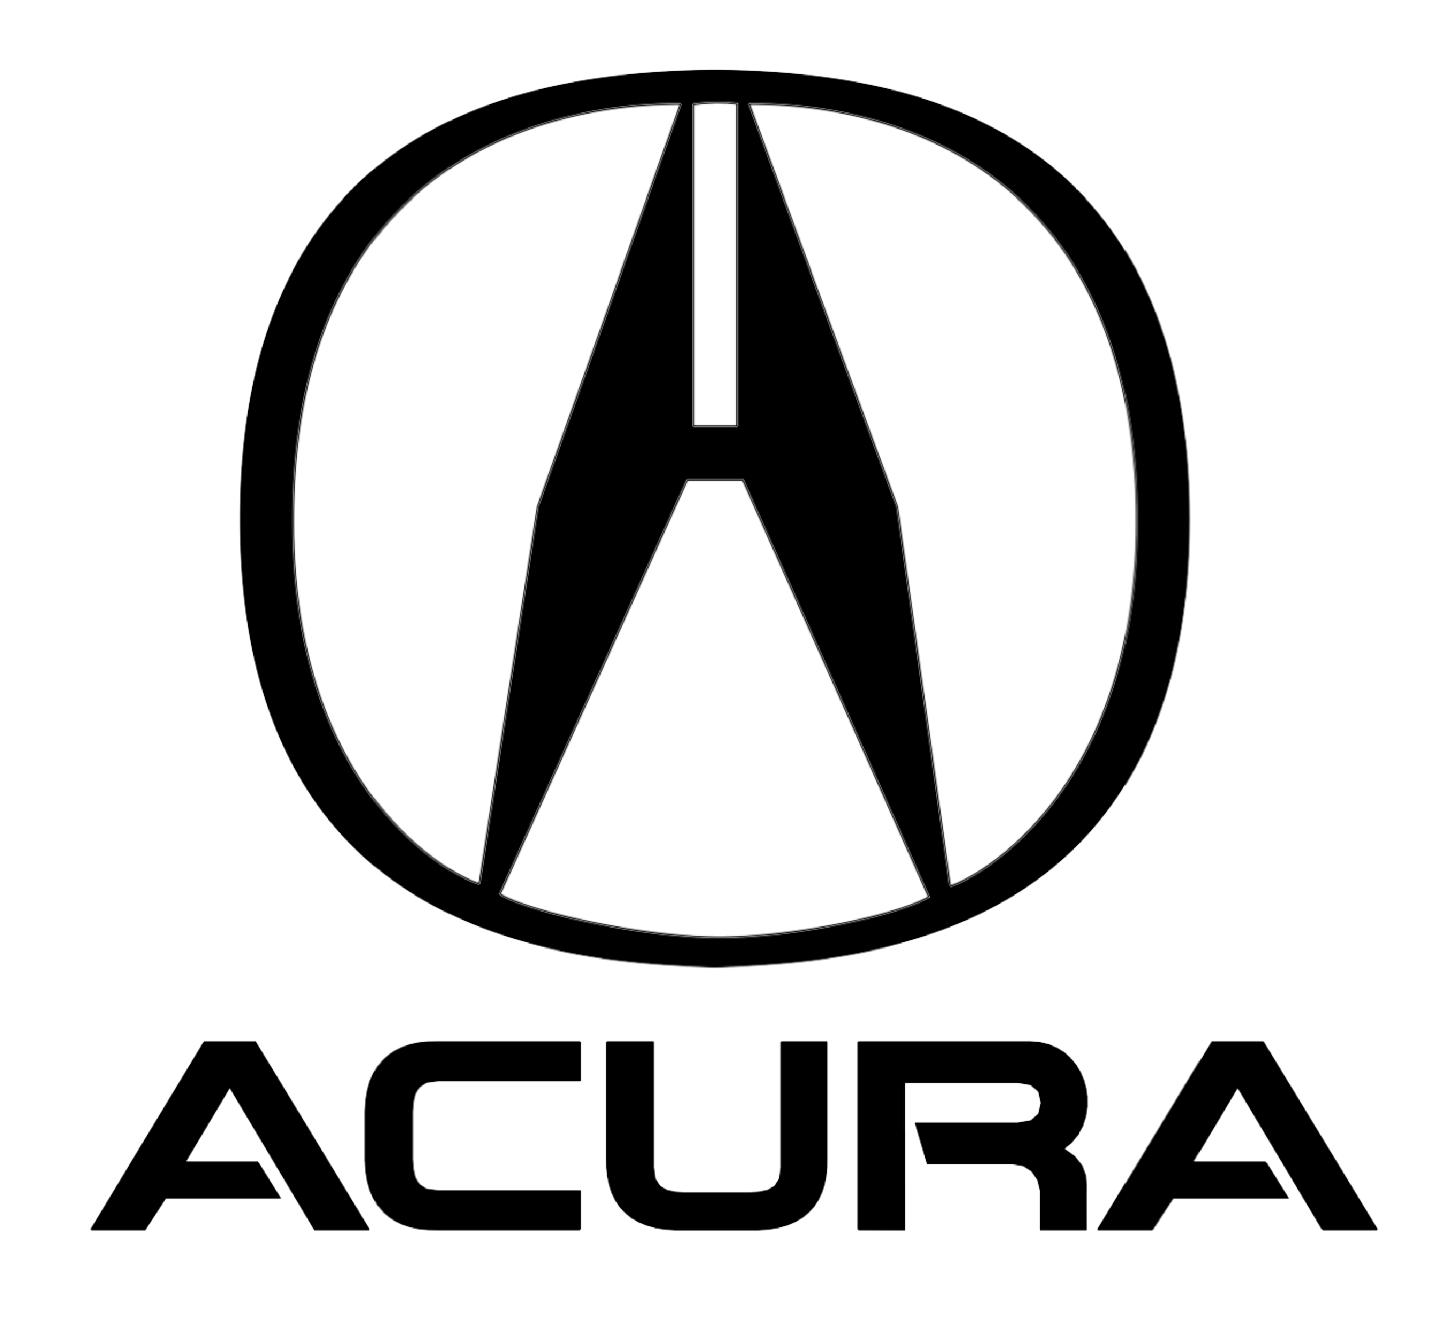 American Car Brands Logos New Updates 2019 2020 Panel Dada C70 Simbol Acura Logo Symbol Meaning And History